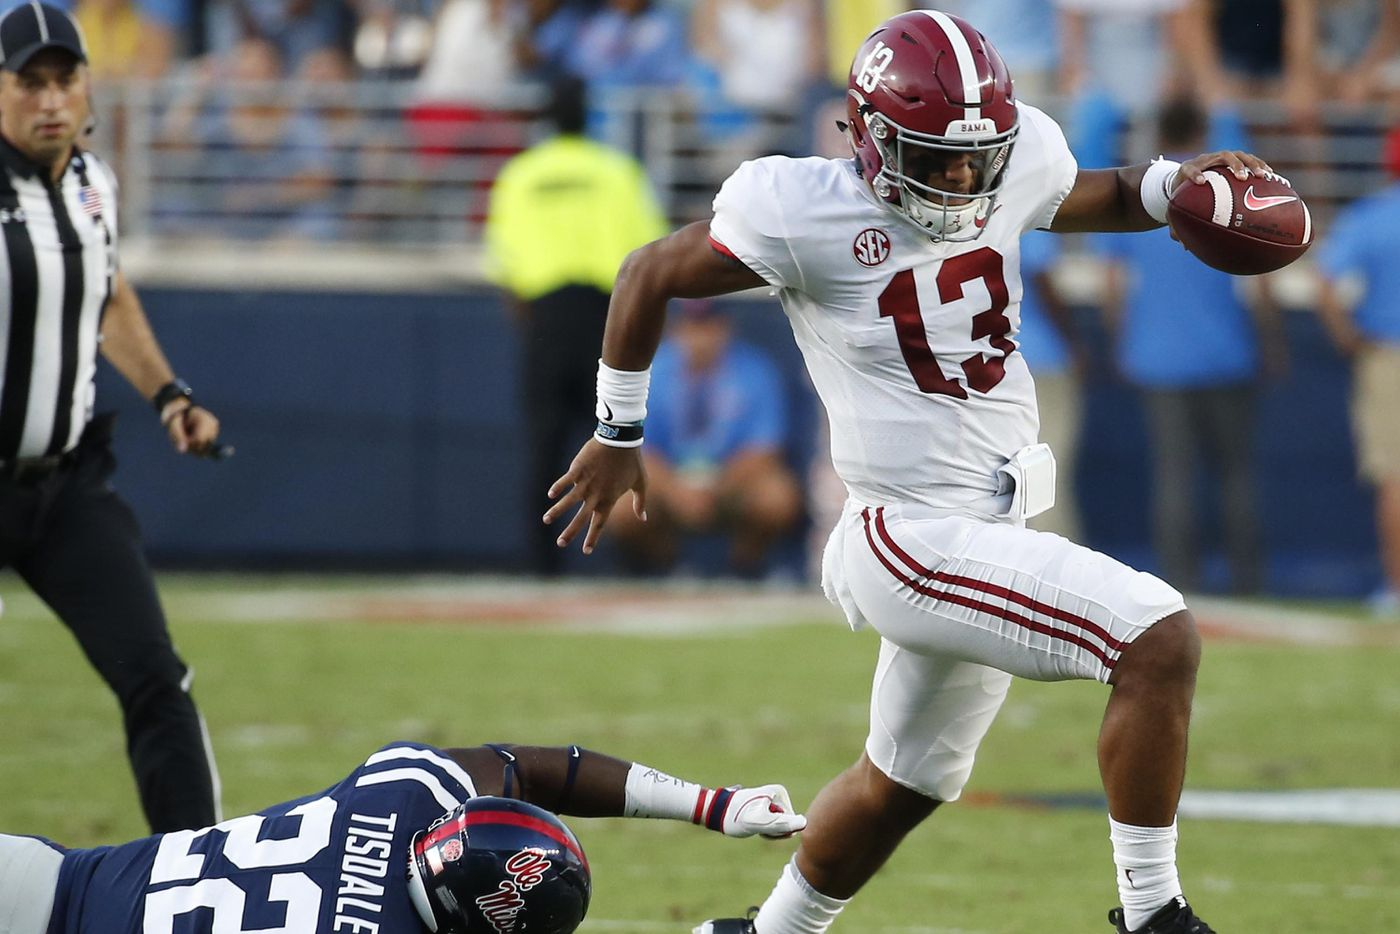 College football Week 7 preview: Alabama fans need to show up early